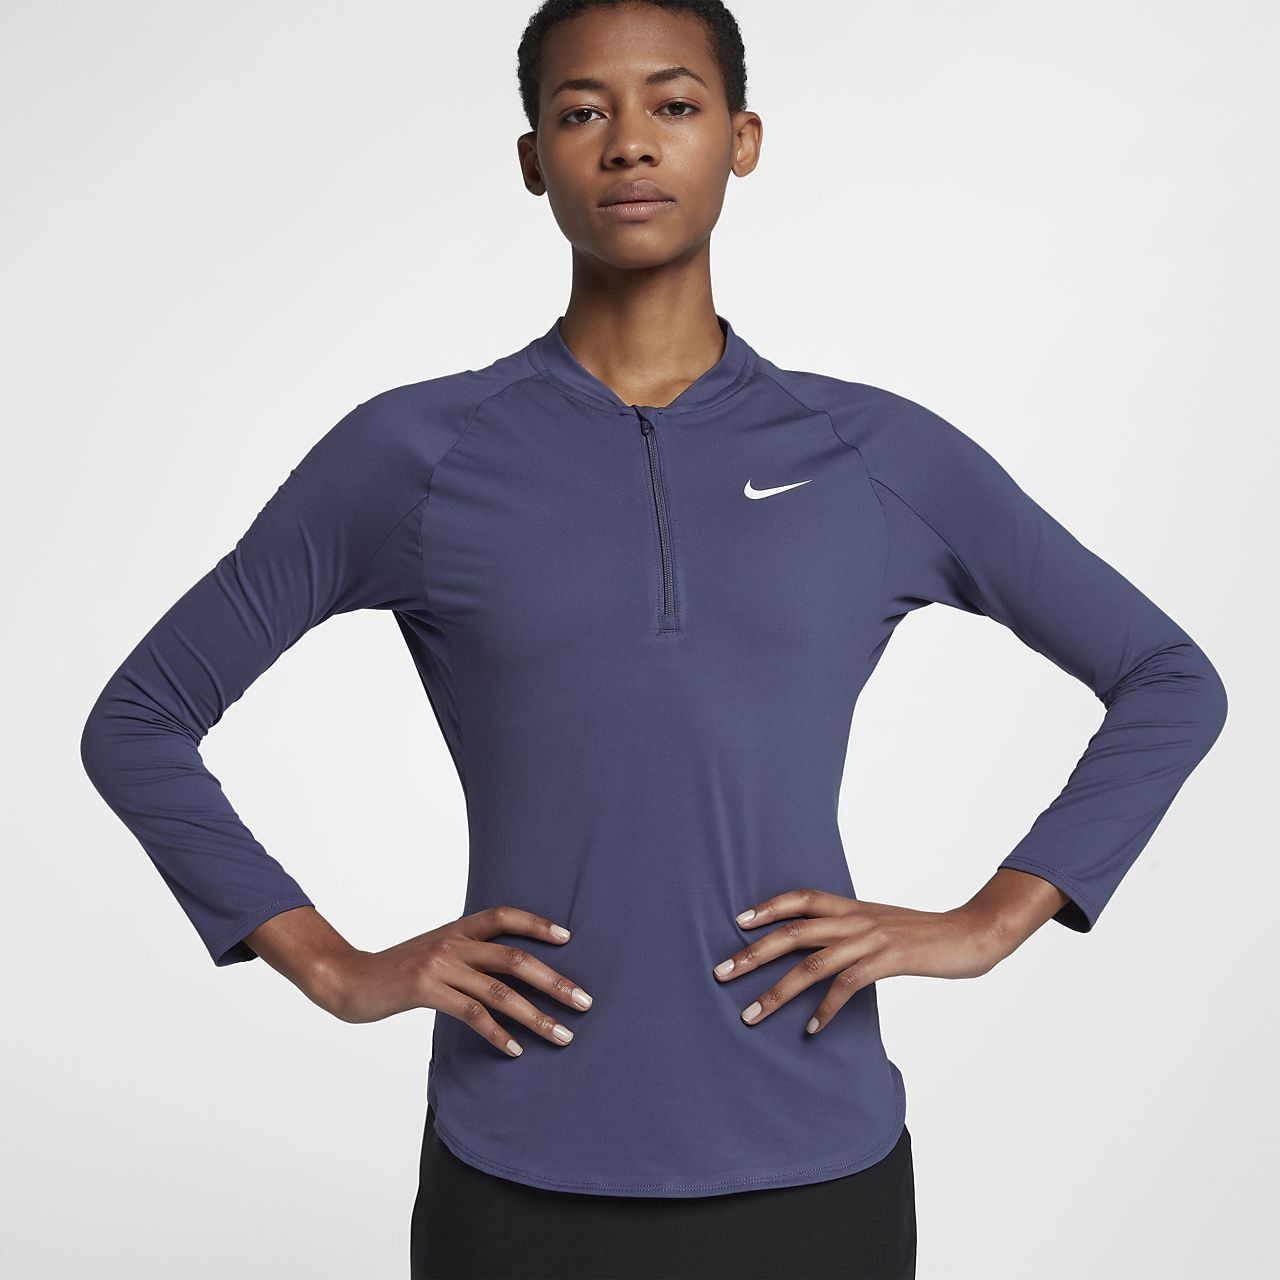 452b3368874f Nike Court Pure Women s Half-Zip Tennis Top - Xl (16–18) Blue ...